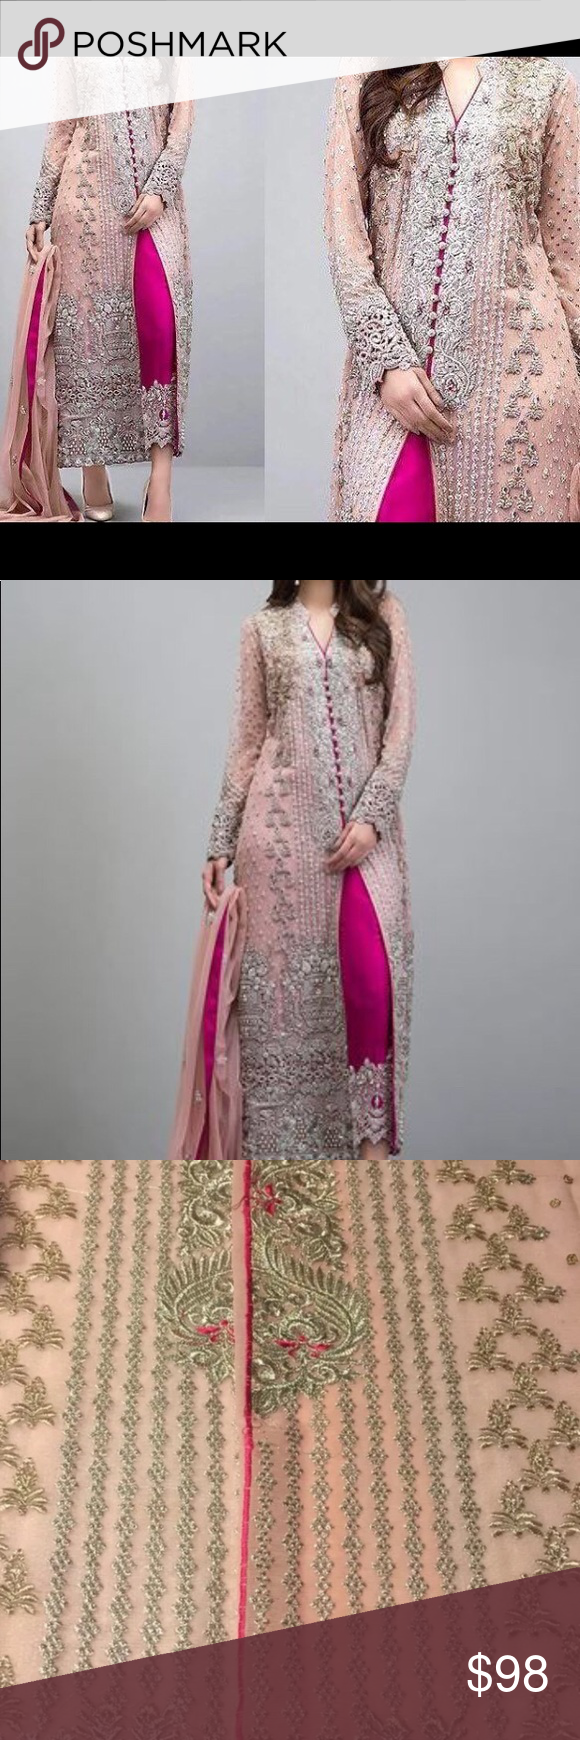 6588bcd767 Pakistani women embroidered Salwar Kameez Unstitched women / ladies  Pakistani Indian women dare are kameez. It is made of chiffon with golden  embroidered on ...